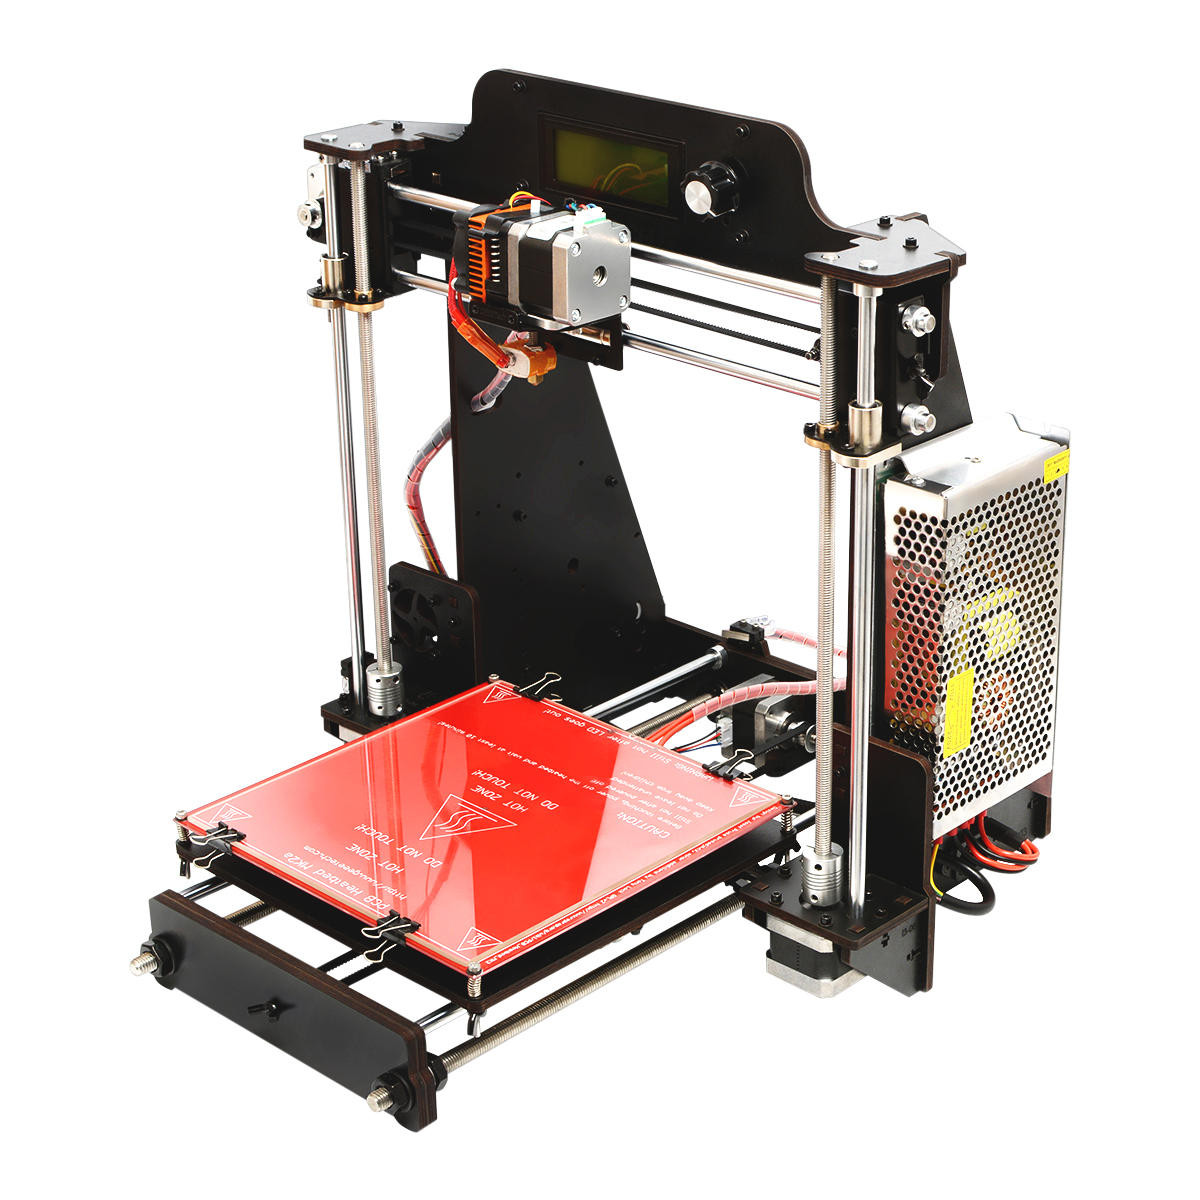 Best ideas about DIY 3D Printer . Save or Pin geeetech prusa i3 pro w diy 3d printer 200x200x180mm Now.